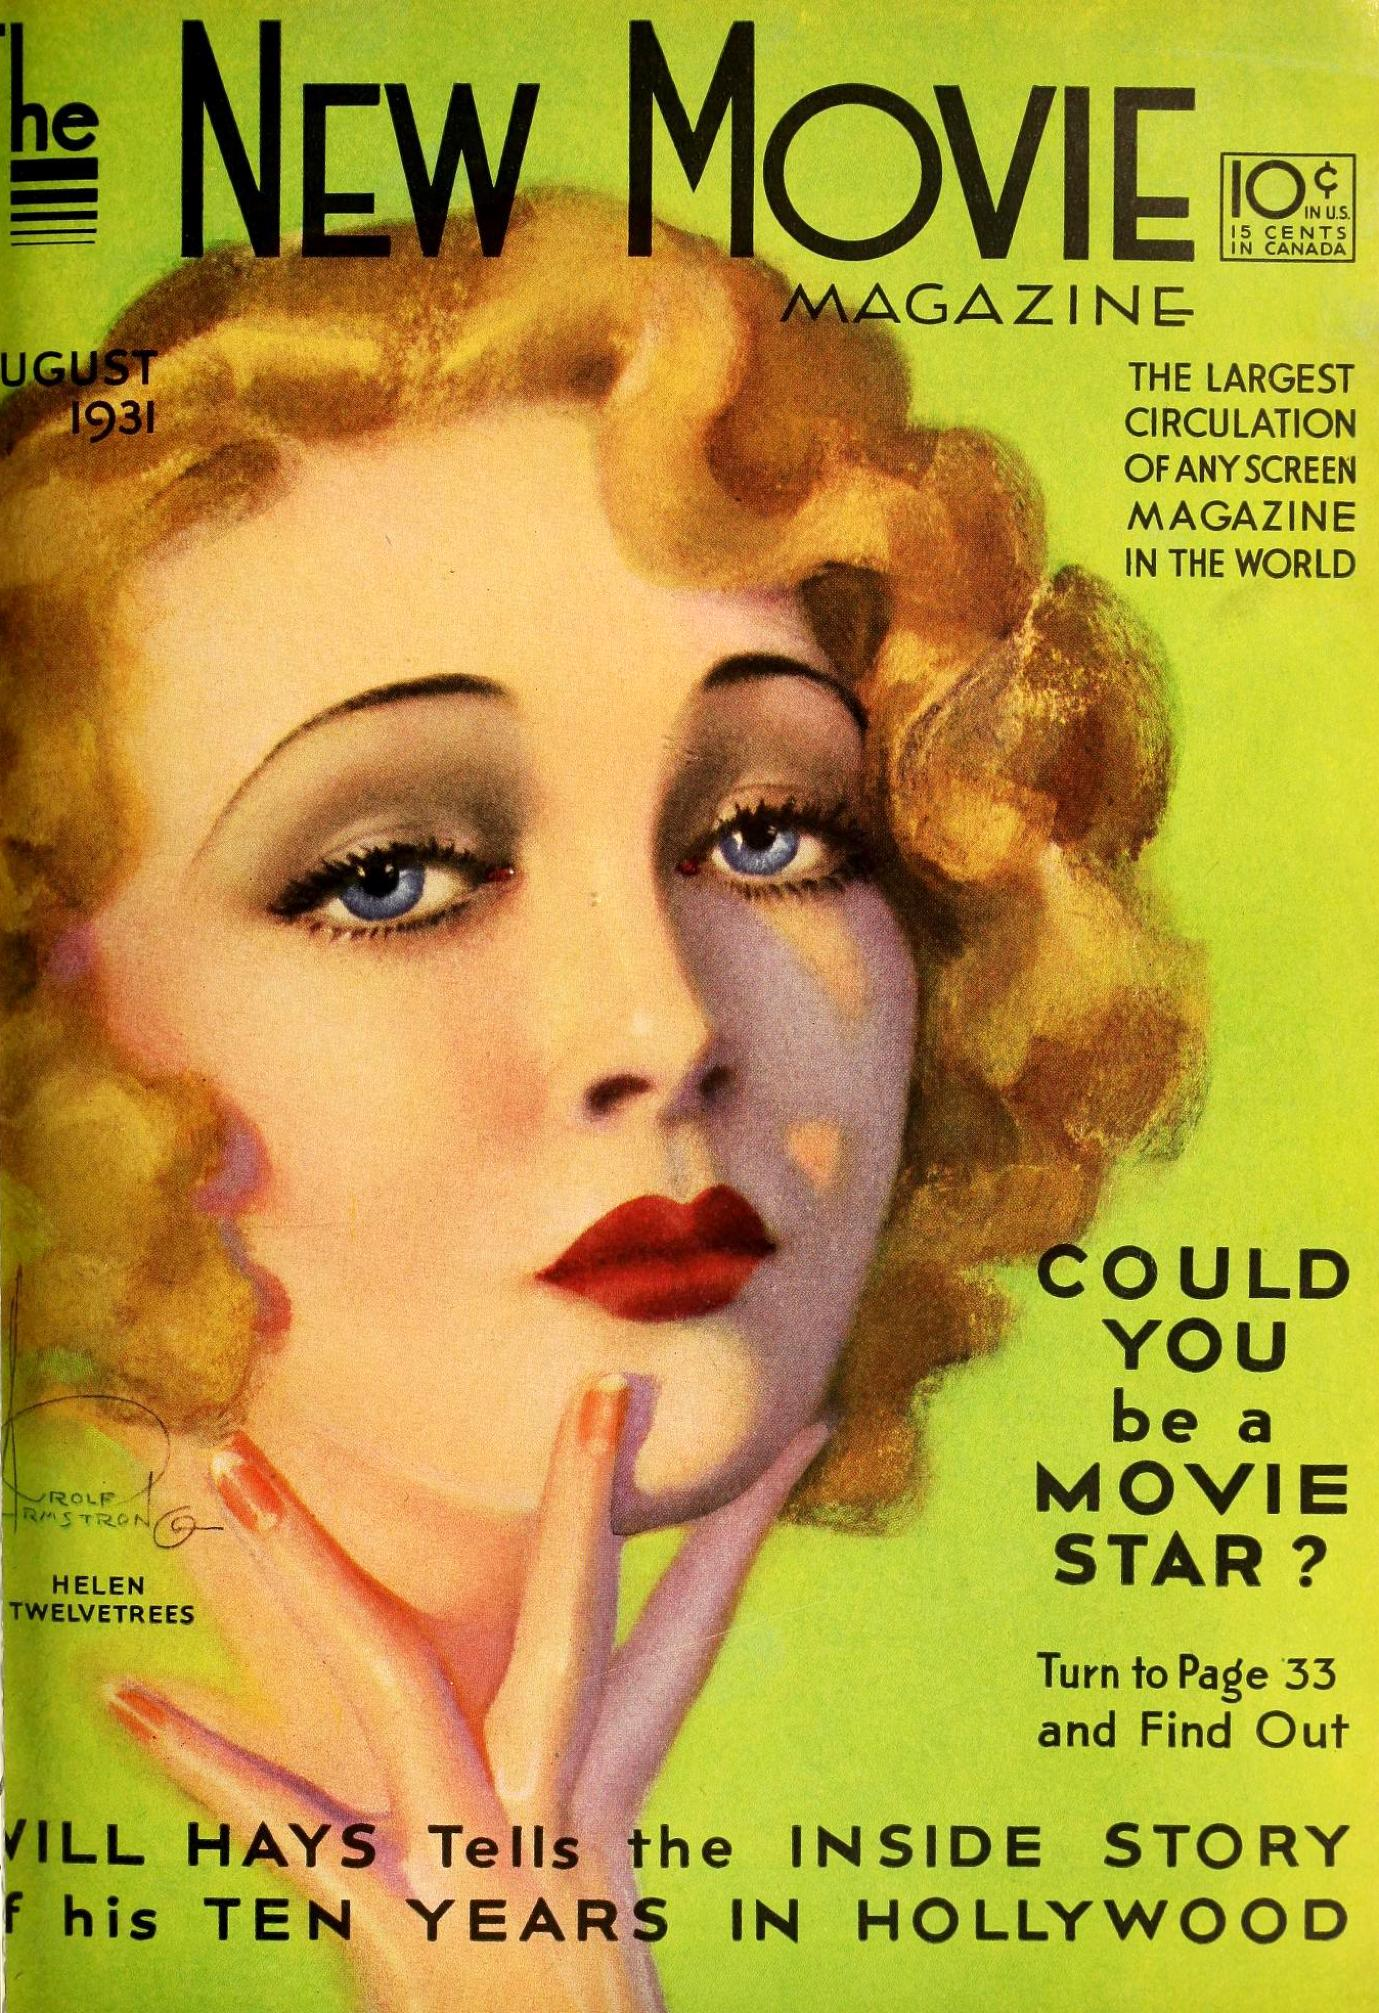 the new movie magazine august 1931 cover large